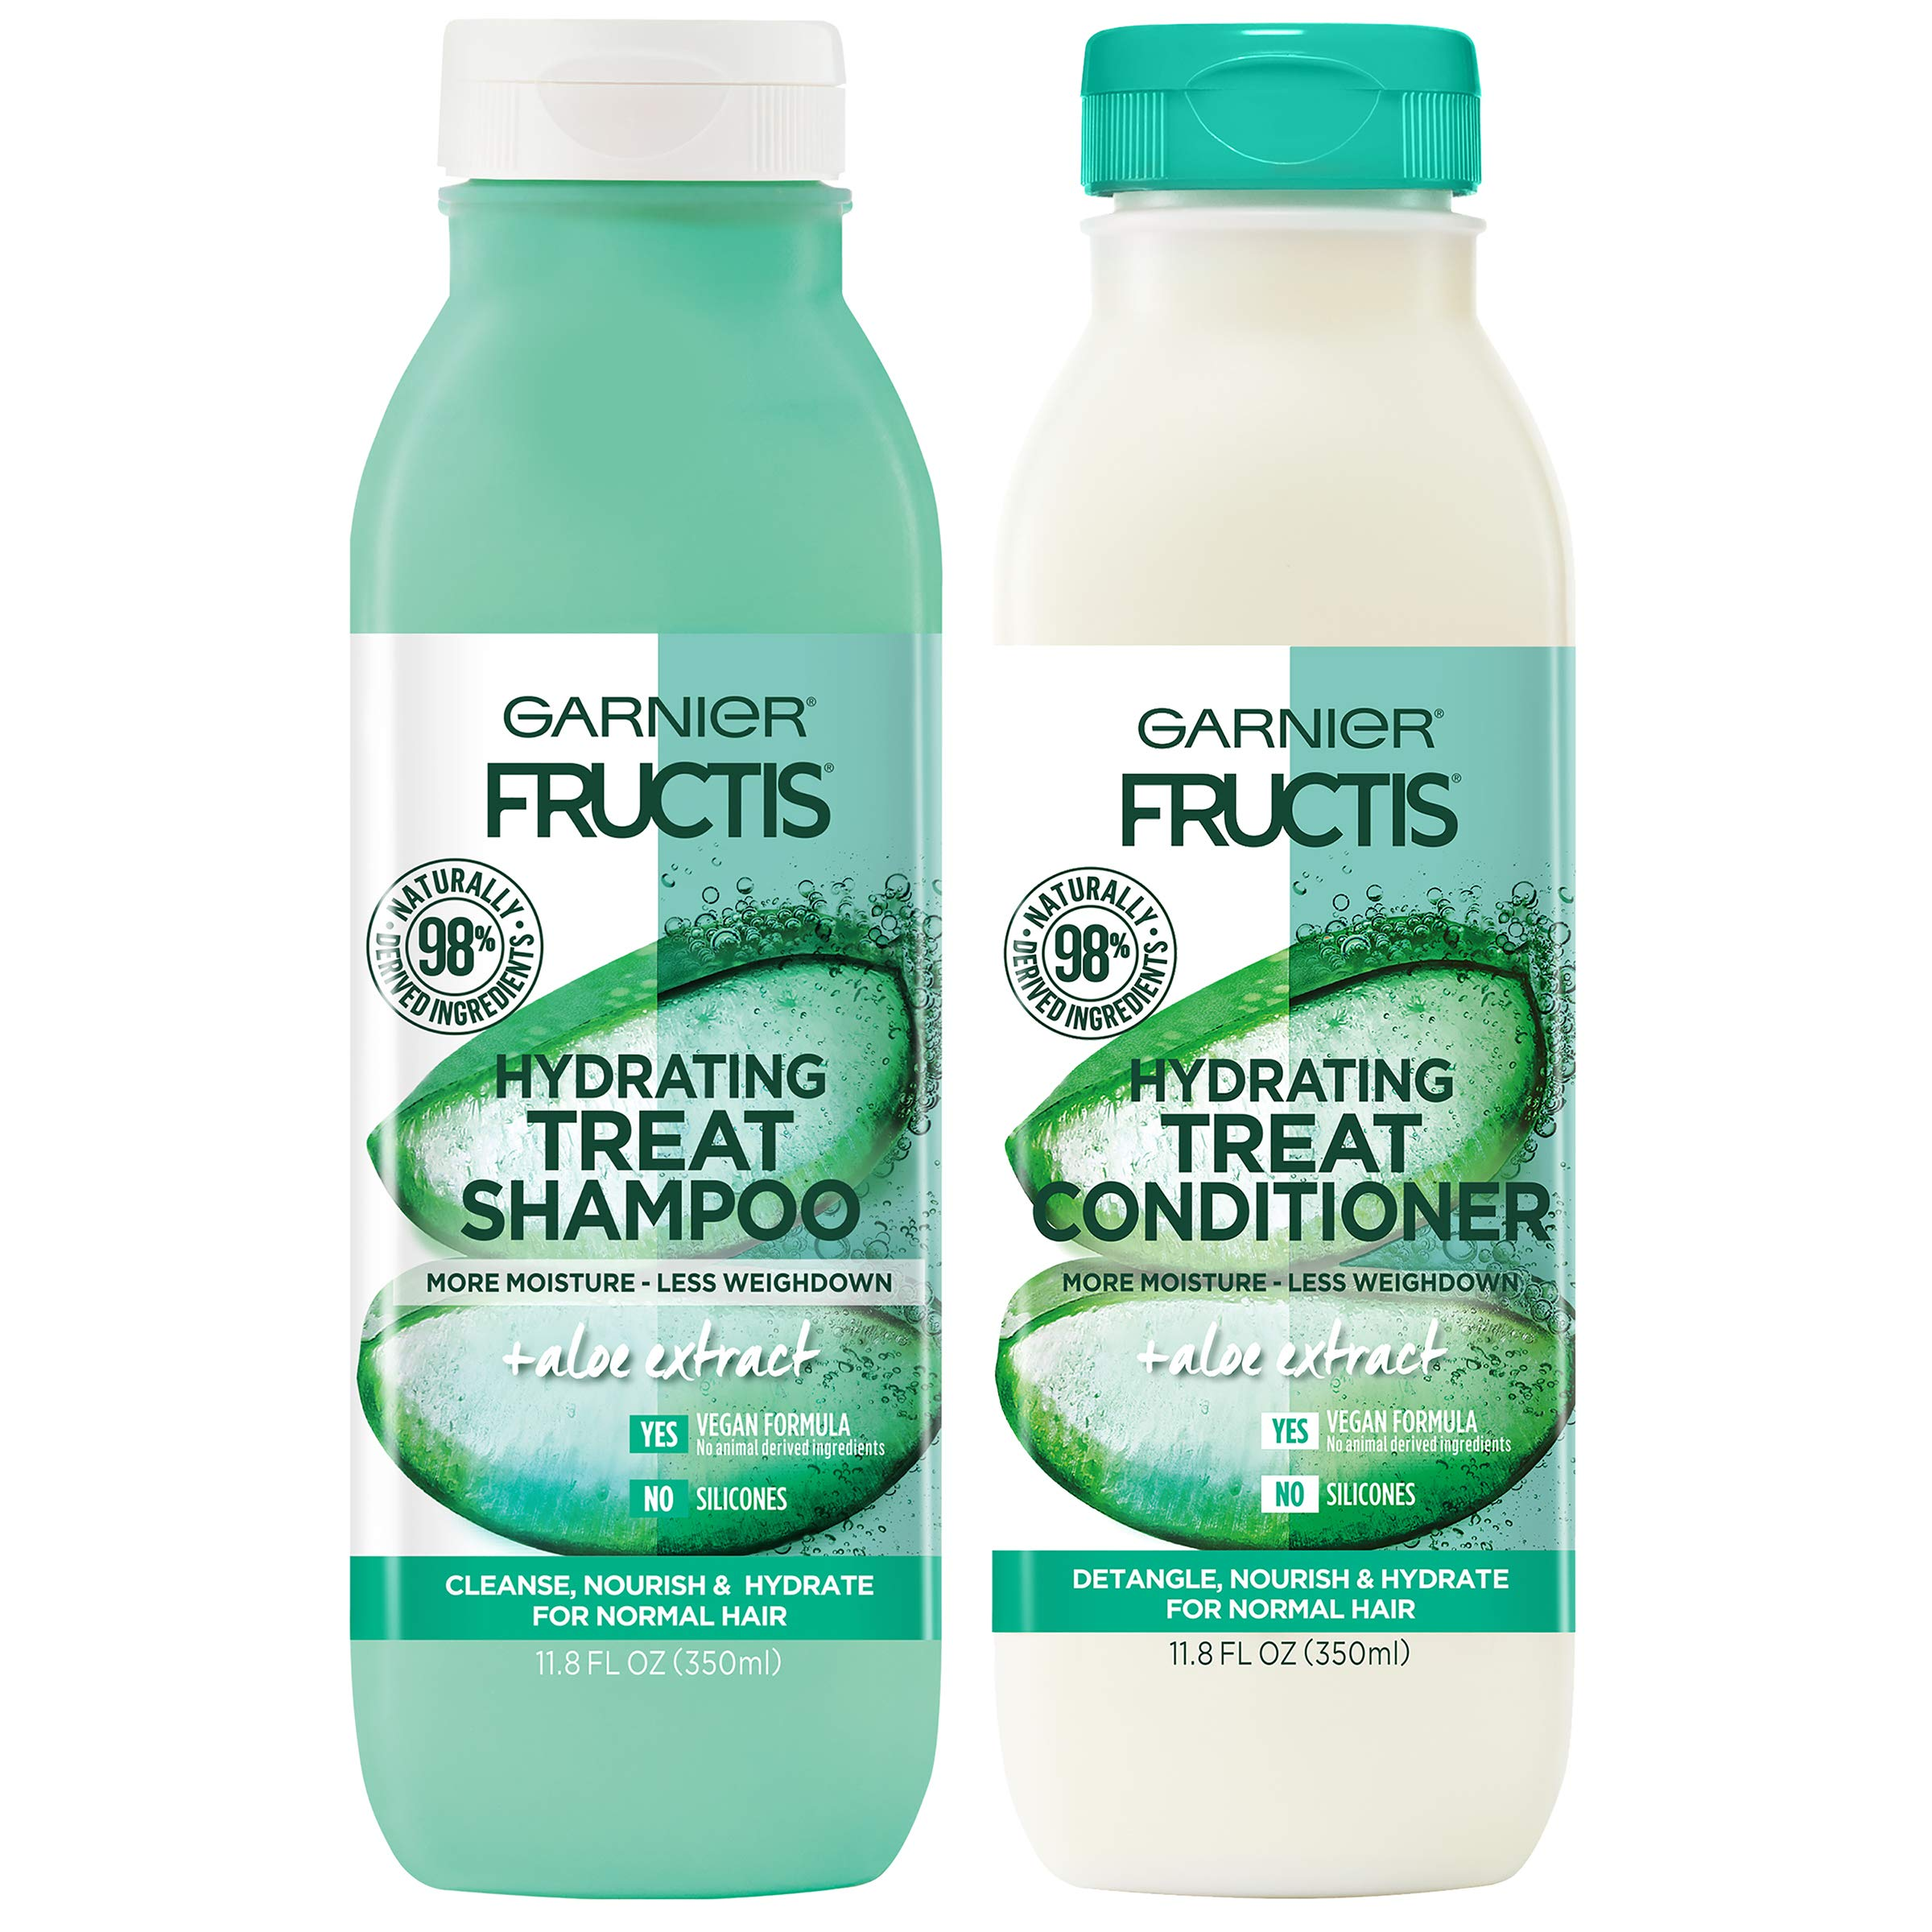 Garnier Fructis Hydrating Treat Shampoo and Conditioner, 98 Percent Naturally Derived Ingredients, Aloe, Nourish and Hydrate for Normal Hair, 11.8 oz ea